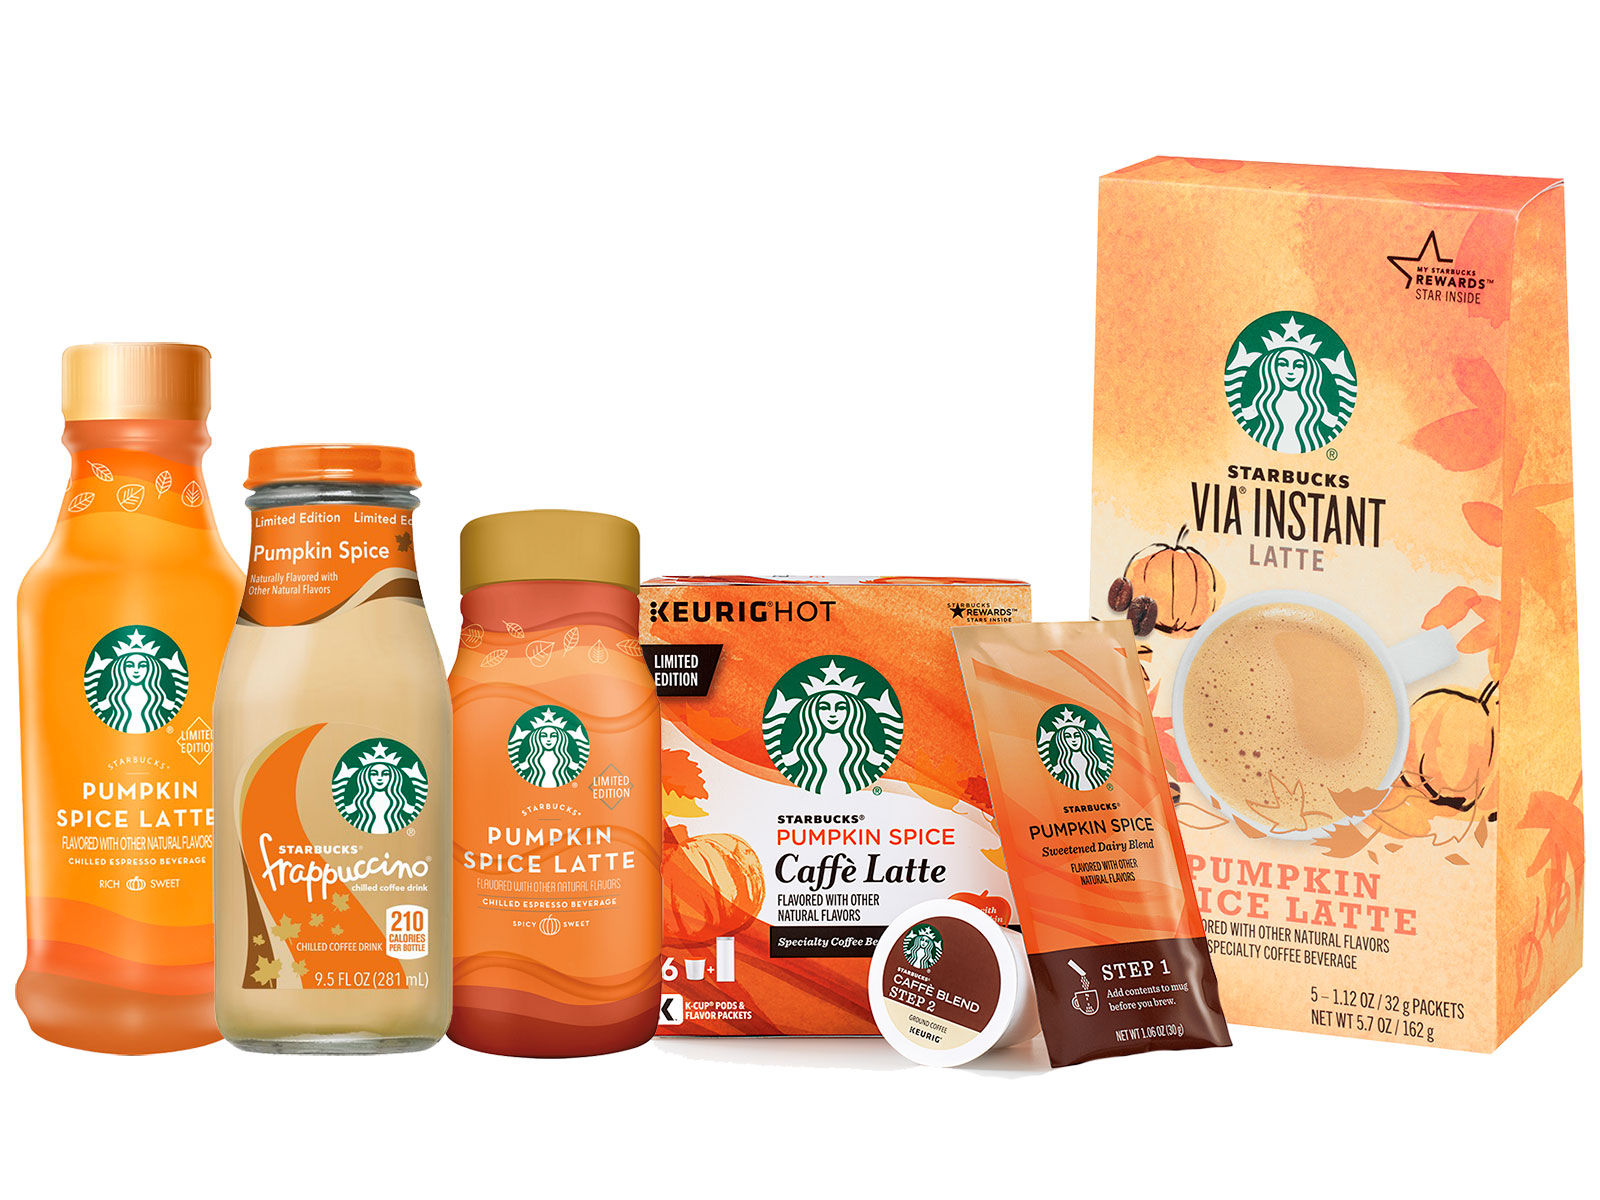 pumpkin spice latte starbucks support group